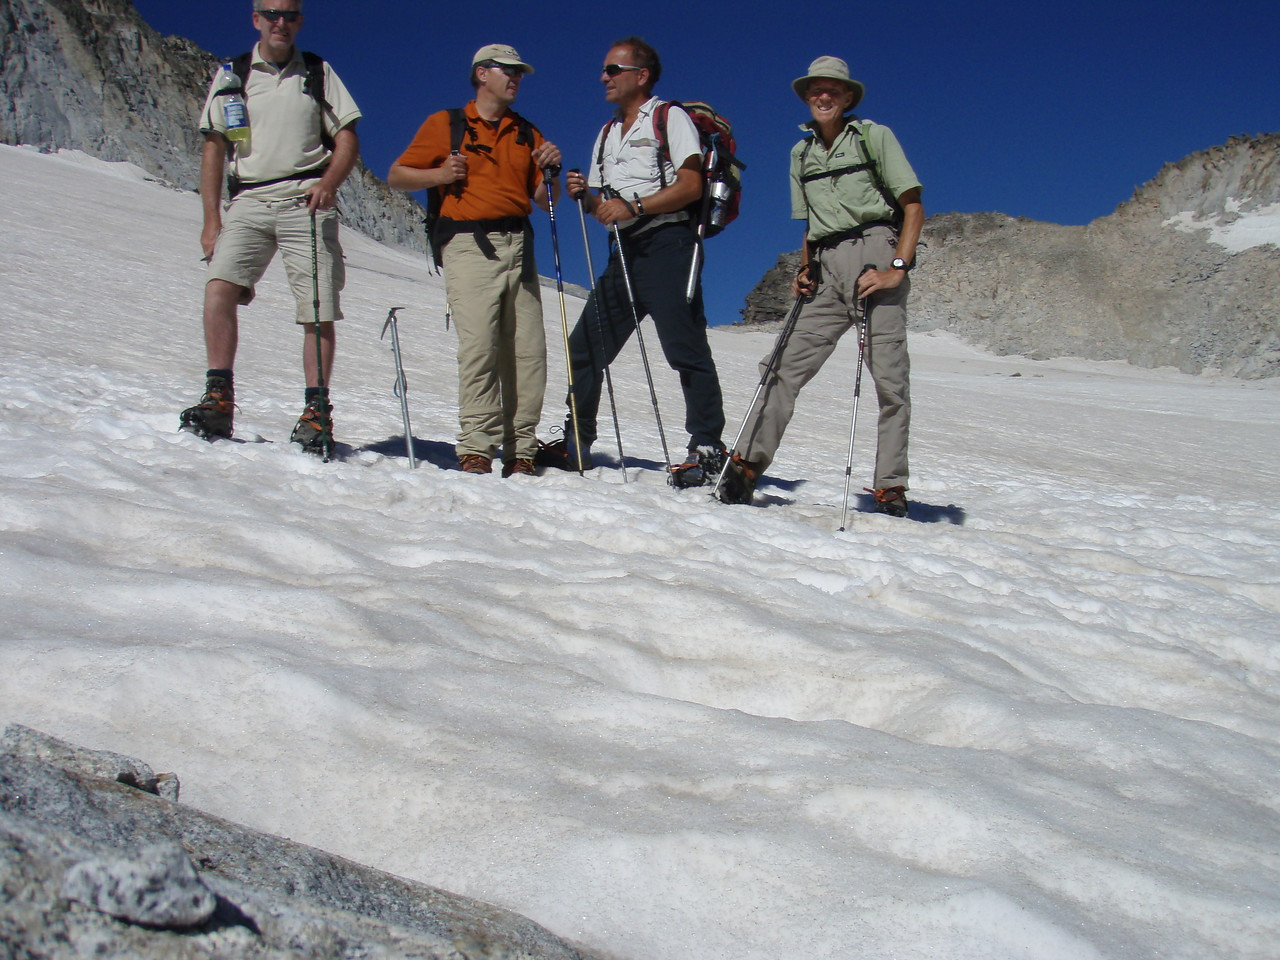 Edward, Albert, Alfred and Vic on the slippery slope of Pico Aneto Glacier